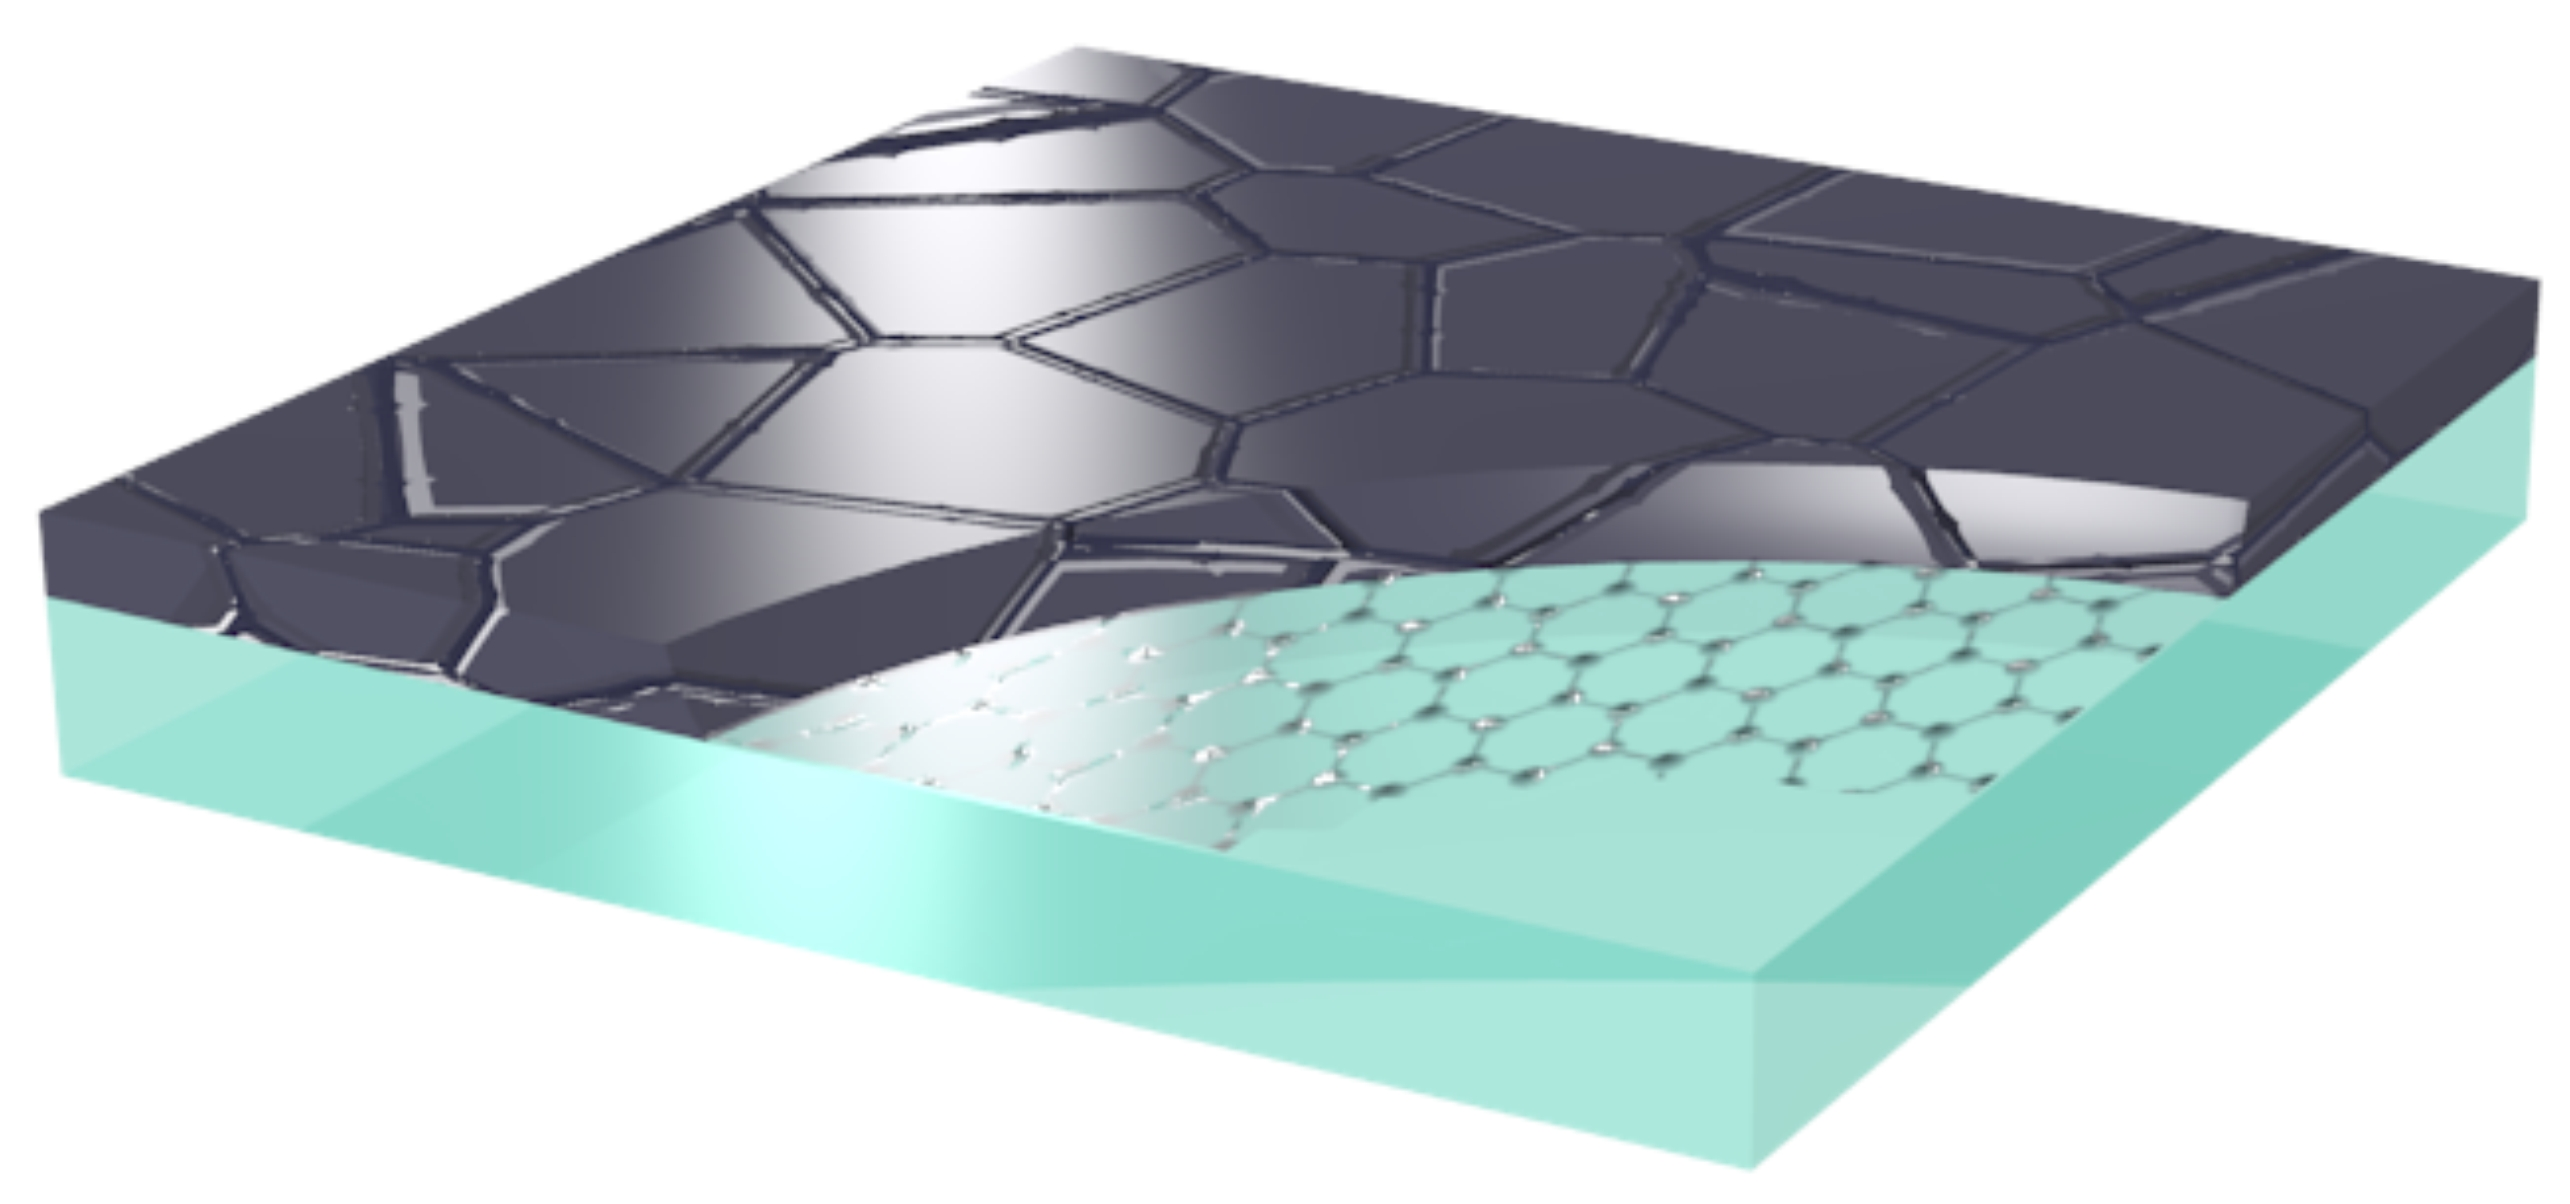 graphene_on_glass_substrate